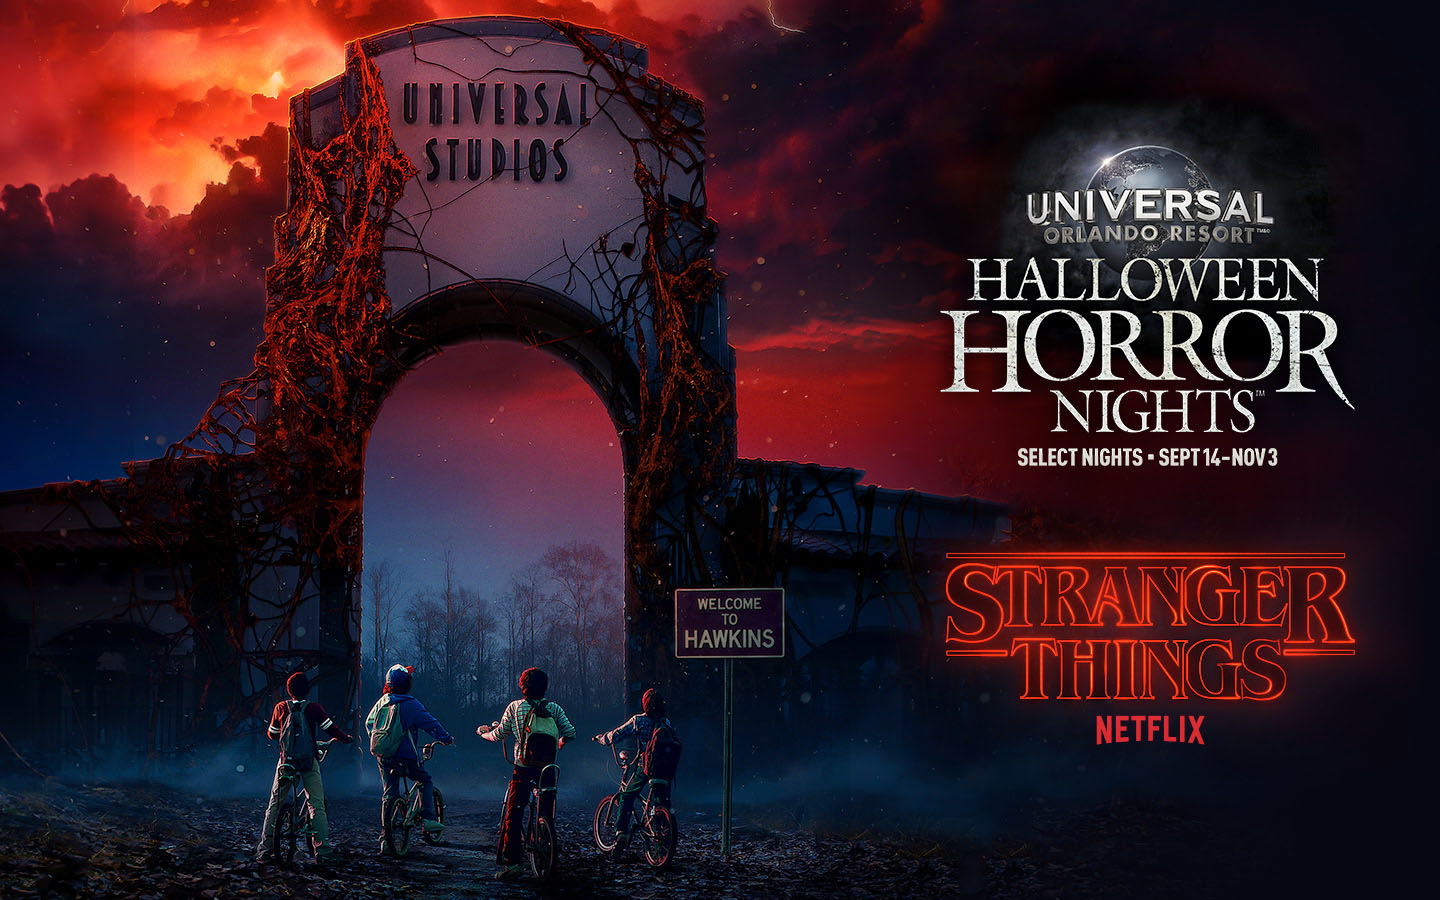 1980's themed halloween horror nights 28 will feature more houses